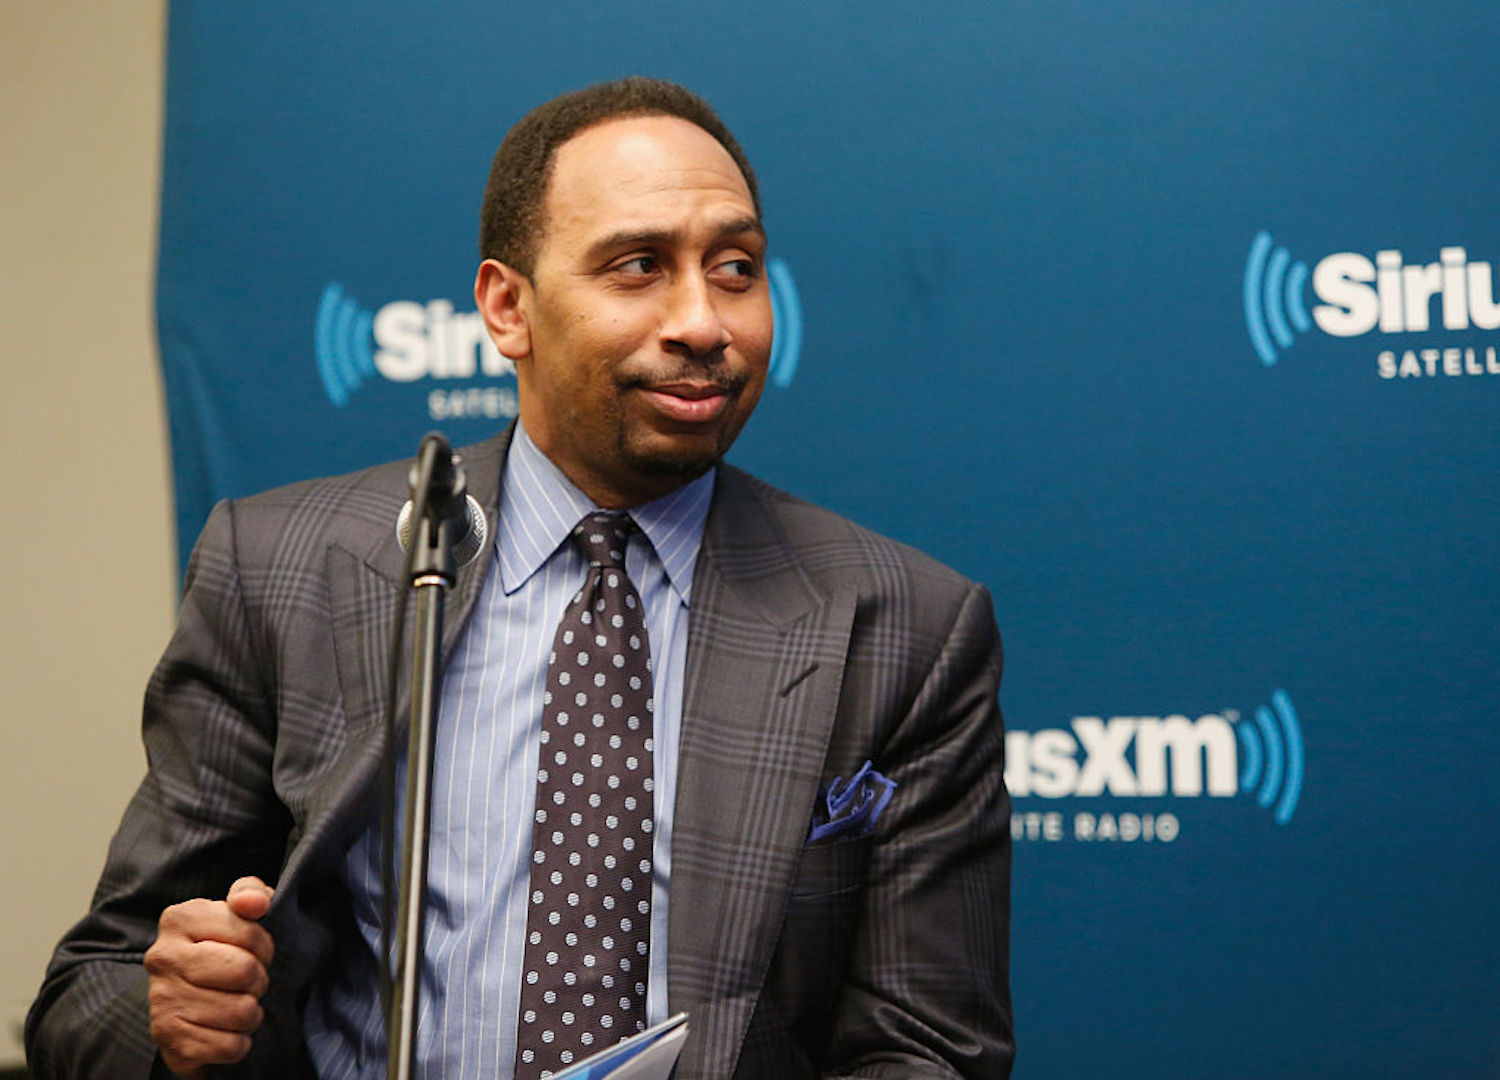 Stephen A. Smith isn't scared of anyone in a debate. He's so confident in his craft he believes he could debate his way to the White House.